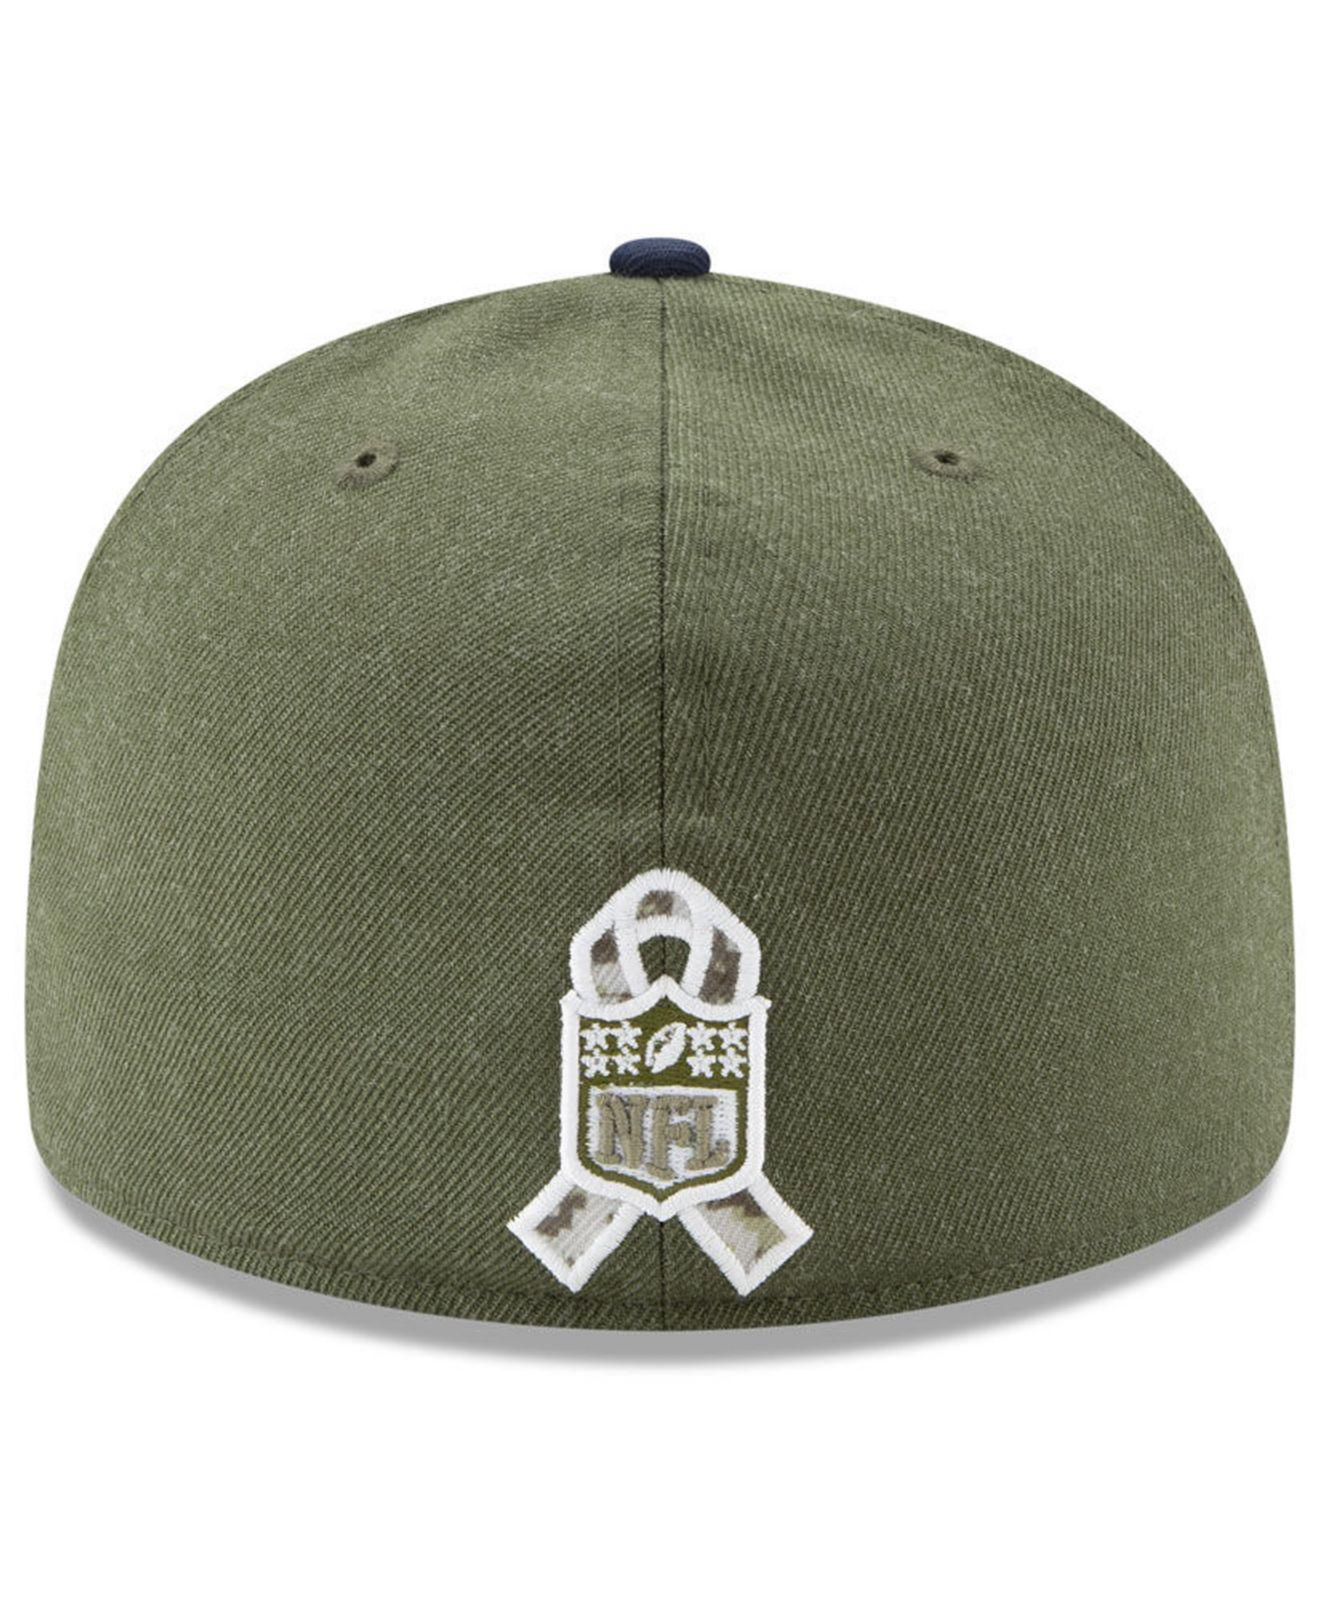 c0d244fcb1fd7c ... order lyst ktz chicago bears salute to service low profile 59fifty  306f9 863e5